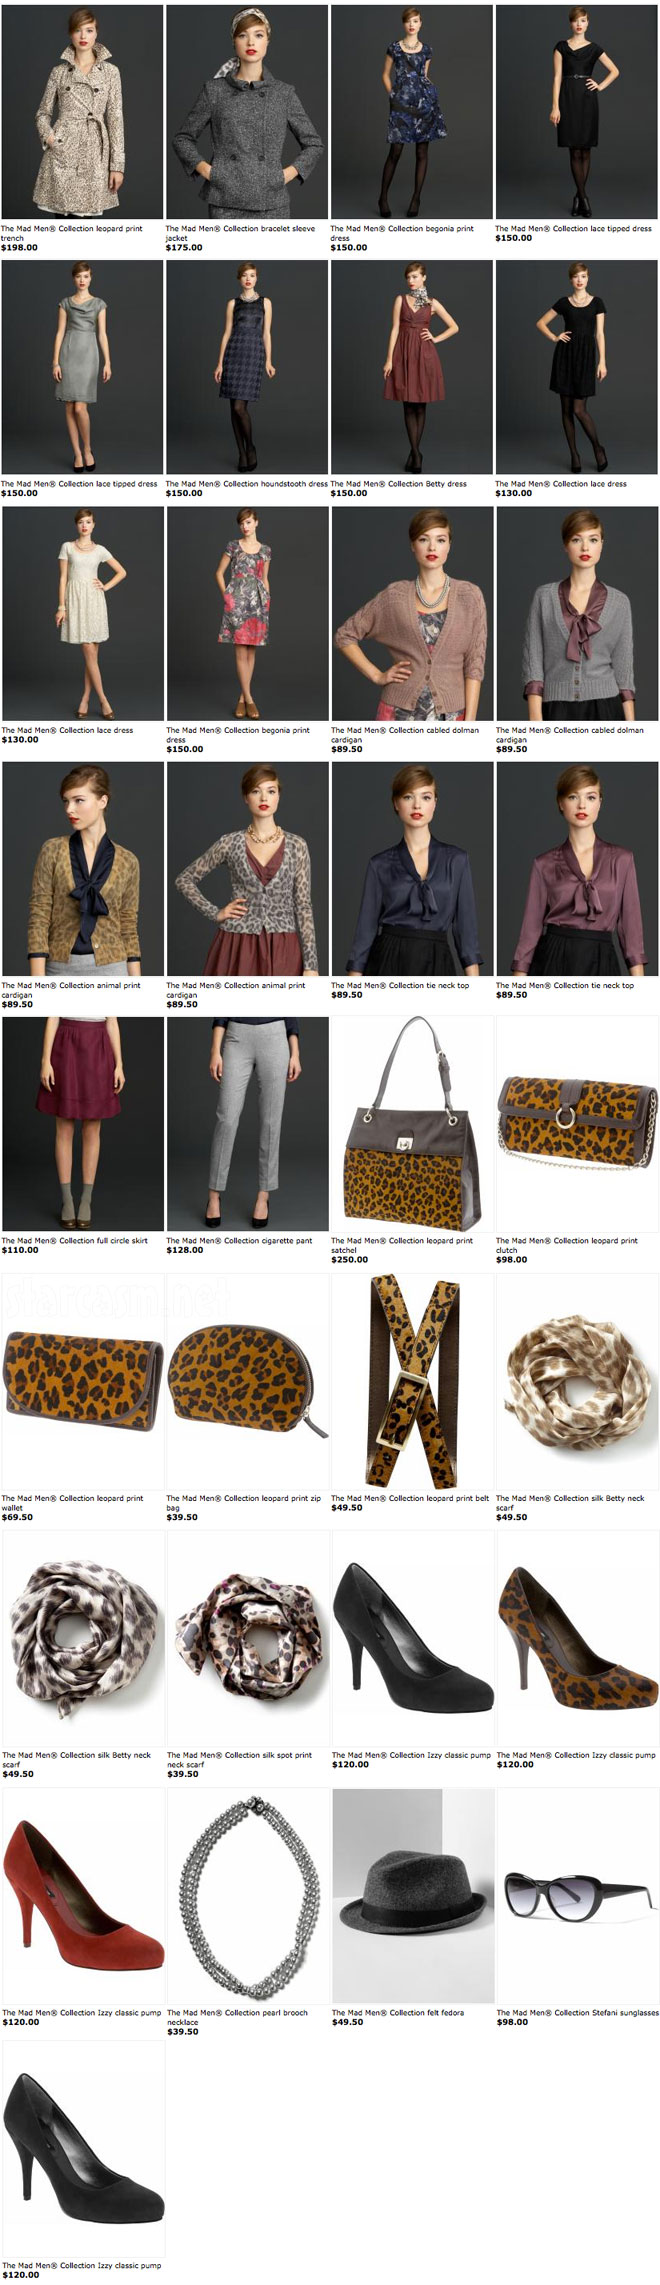 Mad Men Accessories photos banana republic 'mad men' inspired clothing line for men